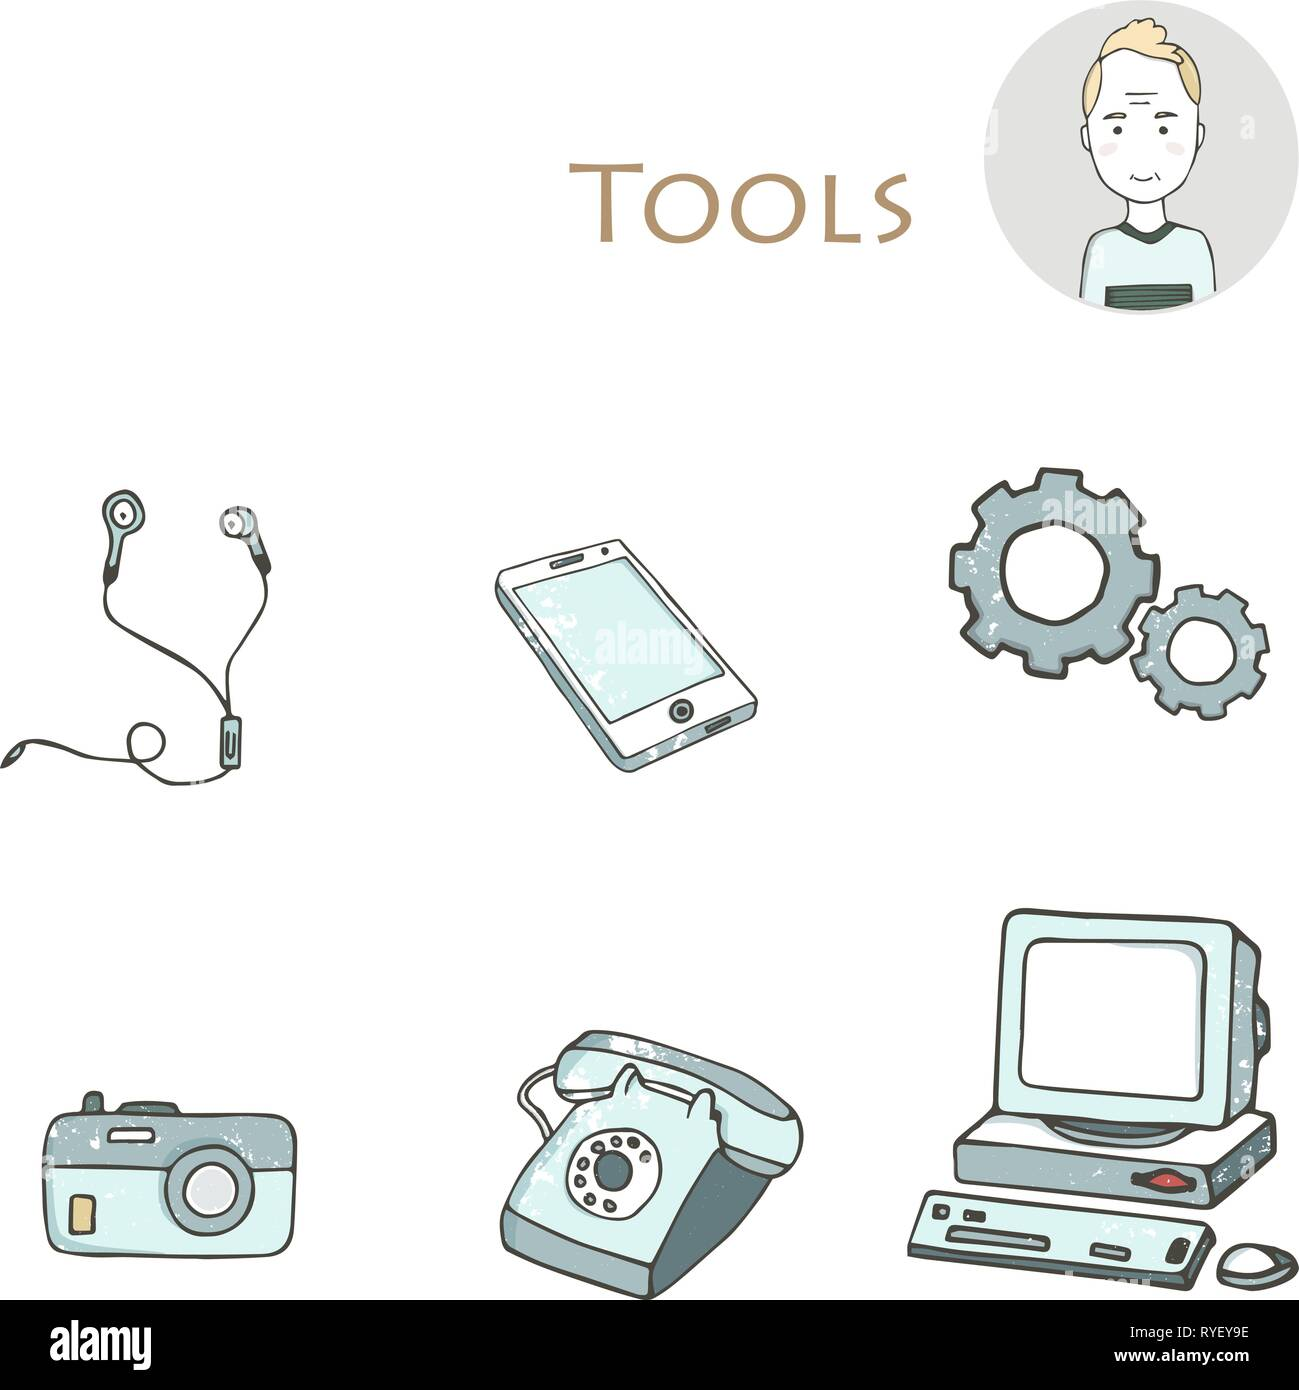 Set of hand drawn electorinc gadget icons with pc, phone, photo camera, headphones, tools, computer, laptop, monitor. Isolated clip art grunge style t Stock Vector